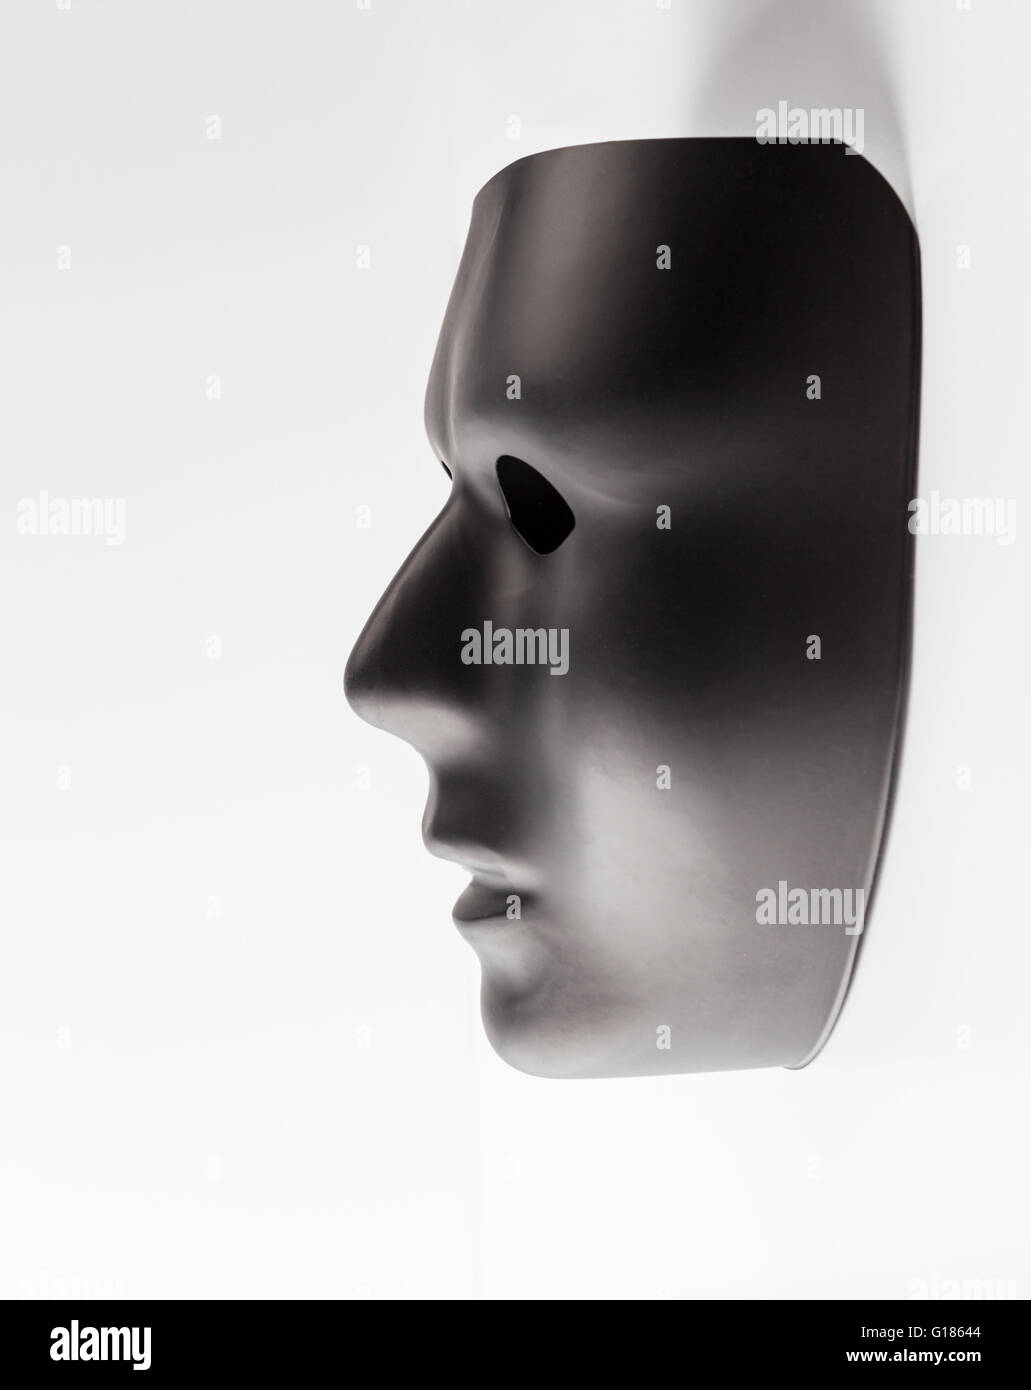 Black mask profile emerging from white background. Hidden identity concept. - Stock Image